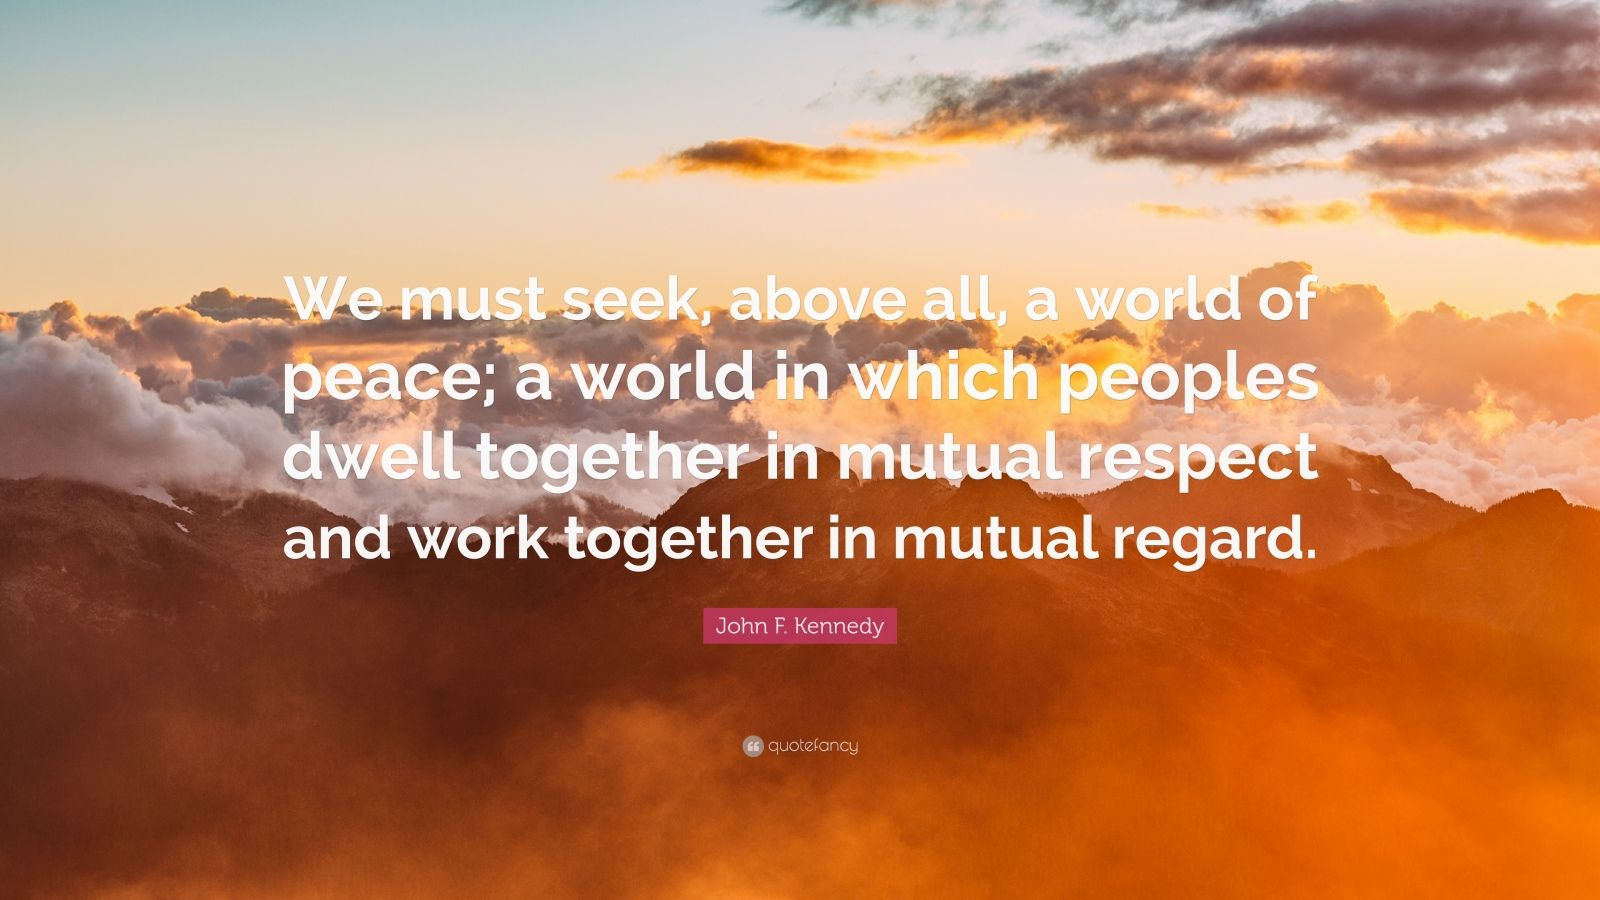 """John F. Kennedy Quote: """"We must seek, above all, a world of peace; a world in which peoples dwell together in mutual respect and work together in mutual regard."""""""